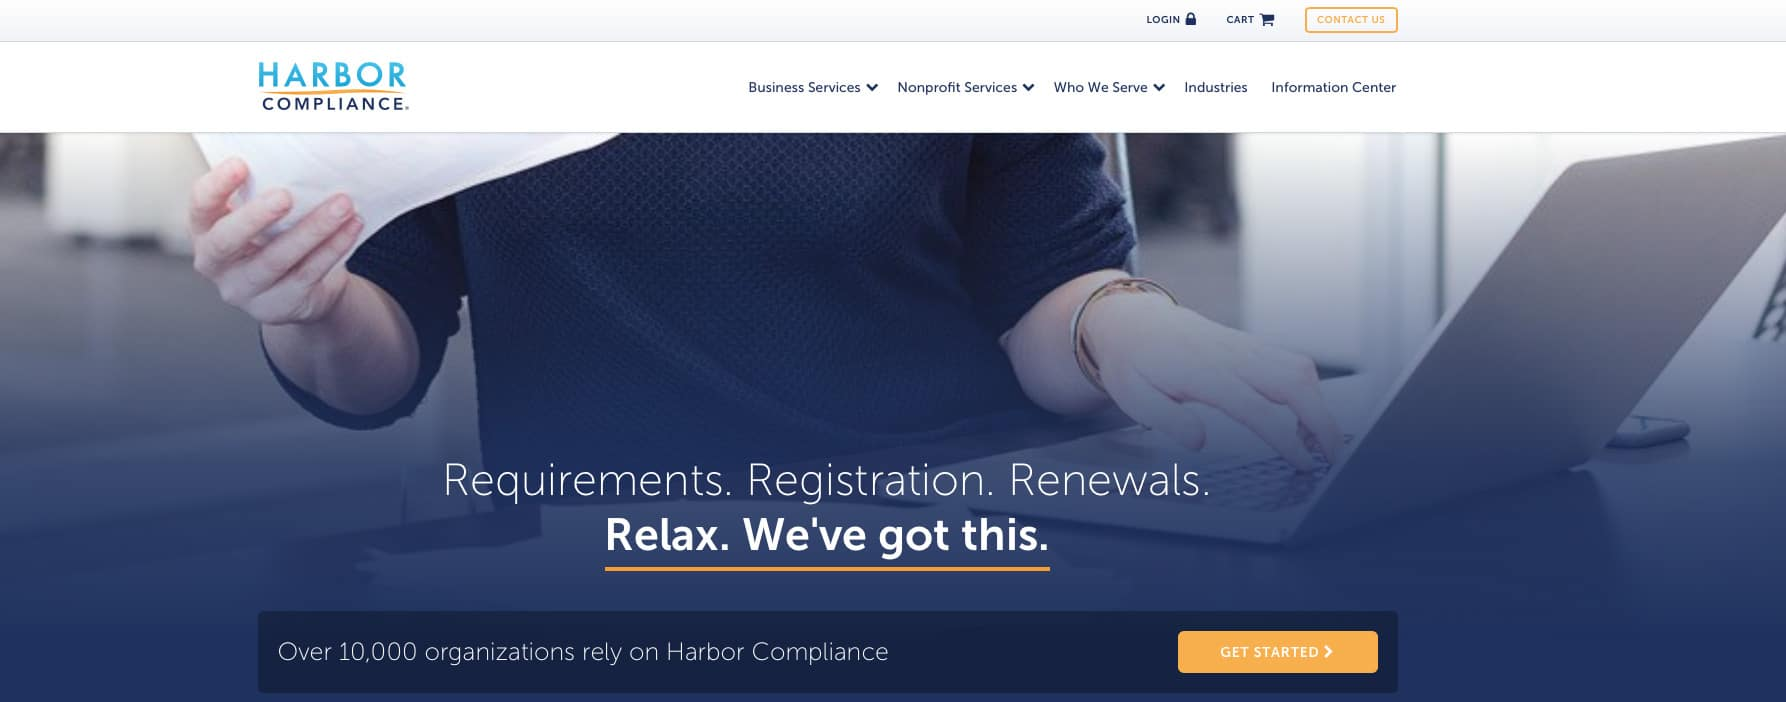 Harbor Compliance Home Page